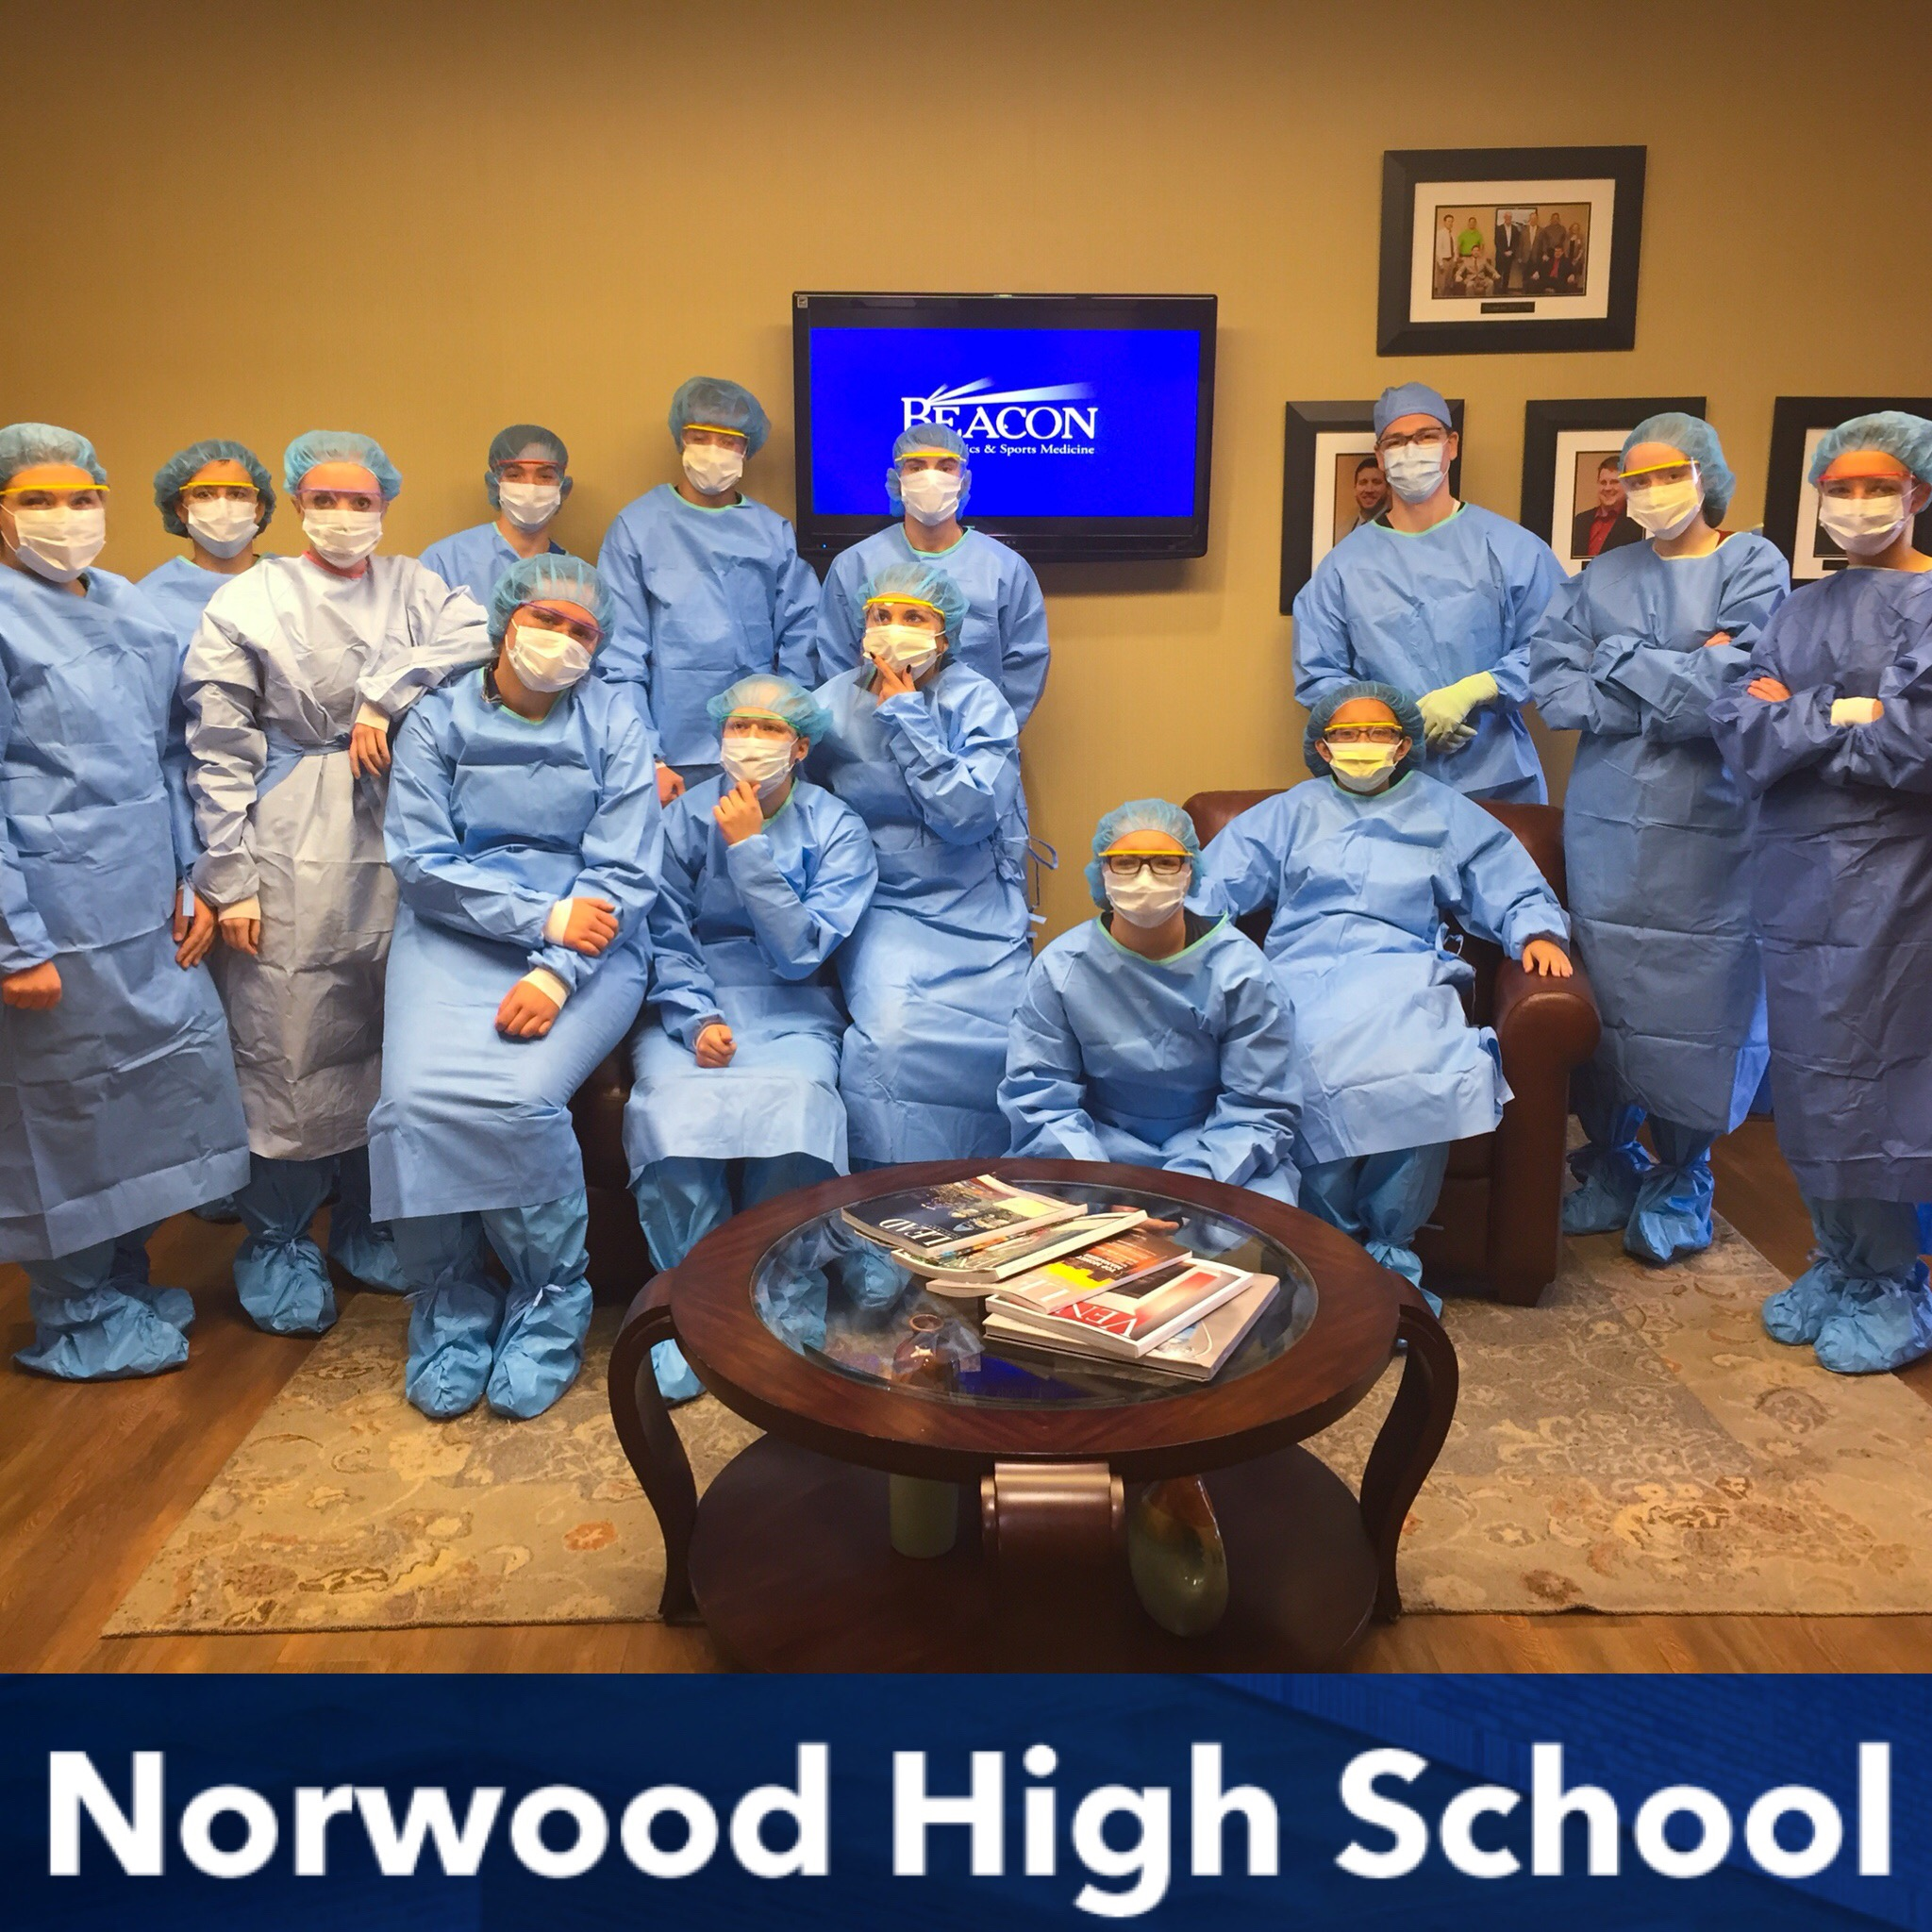 Norwood High School